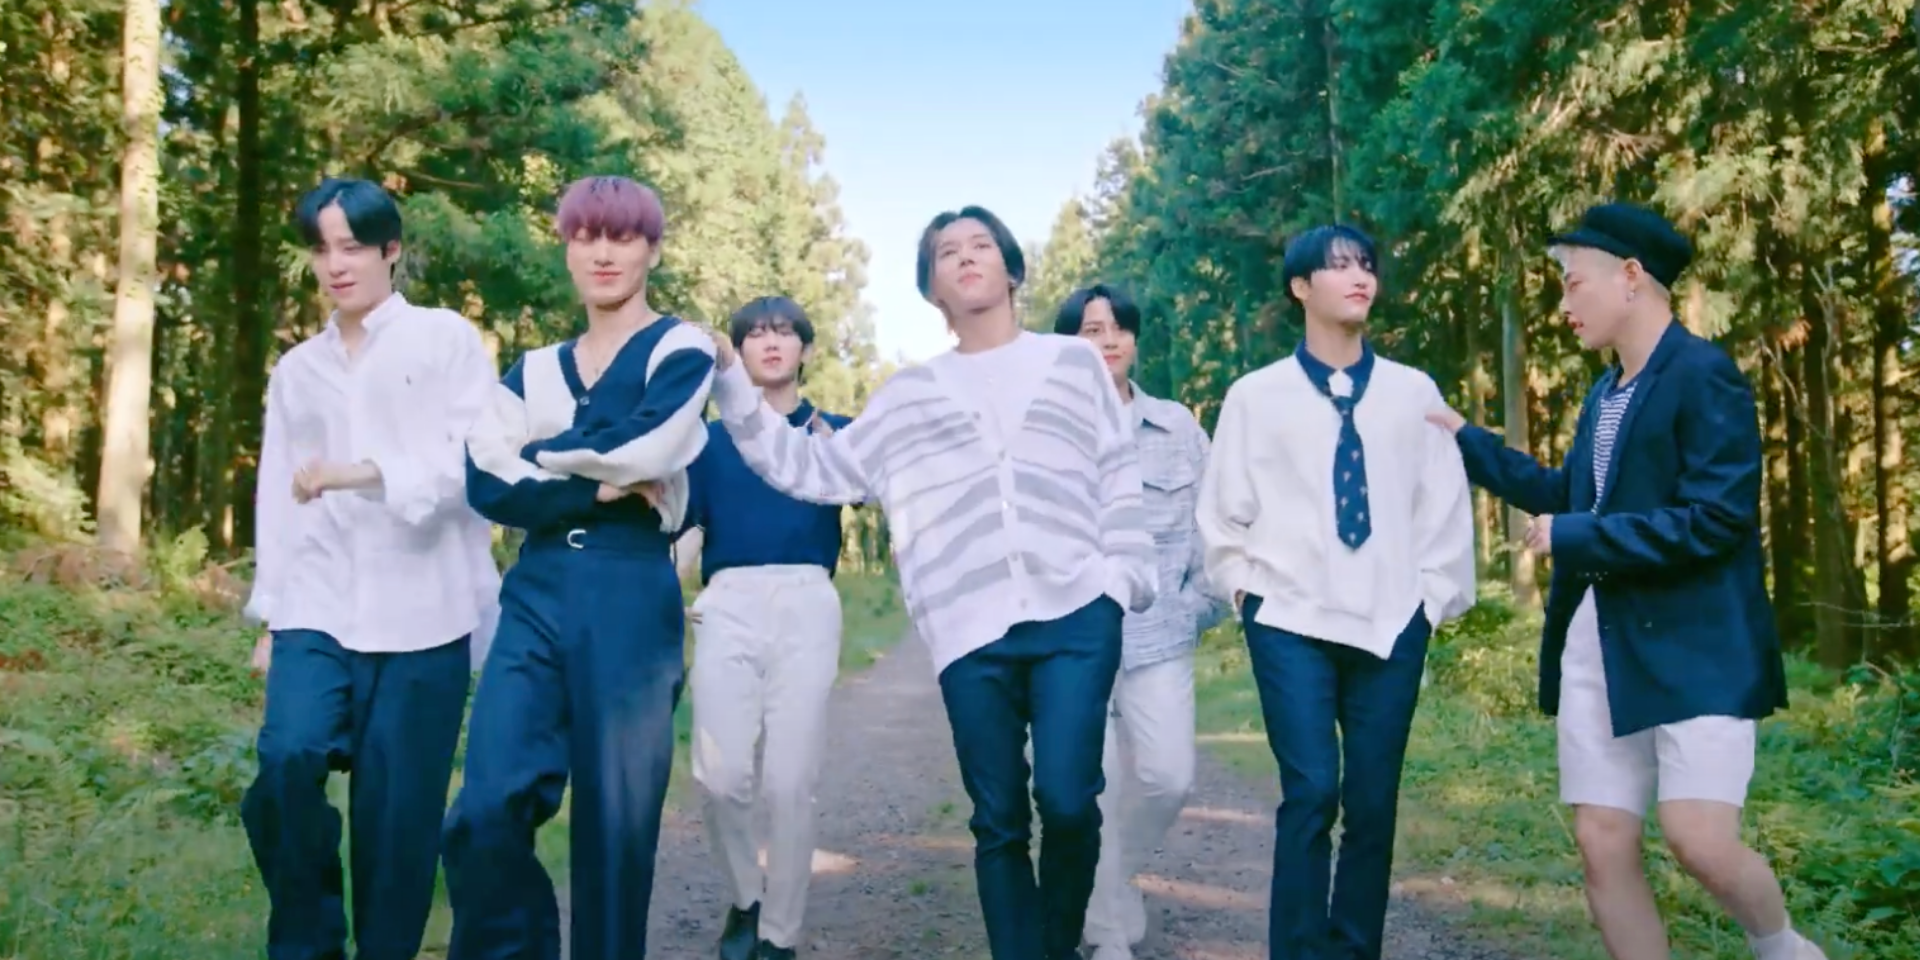 ATEEZ release Japanese single album with summer track 'Dreamers' - listen